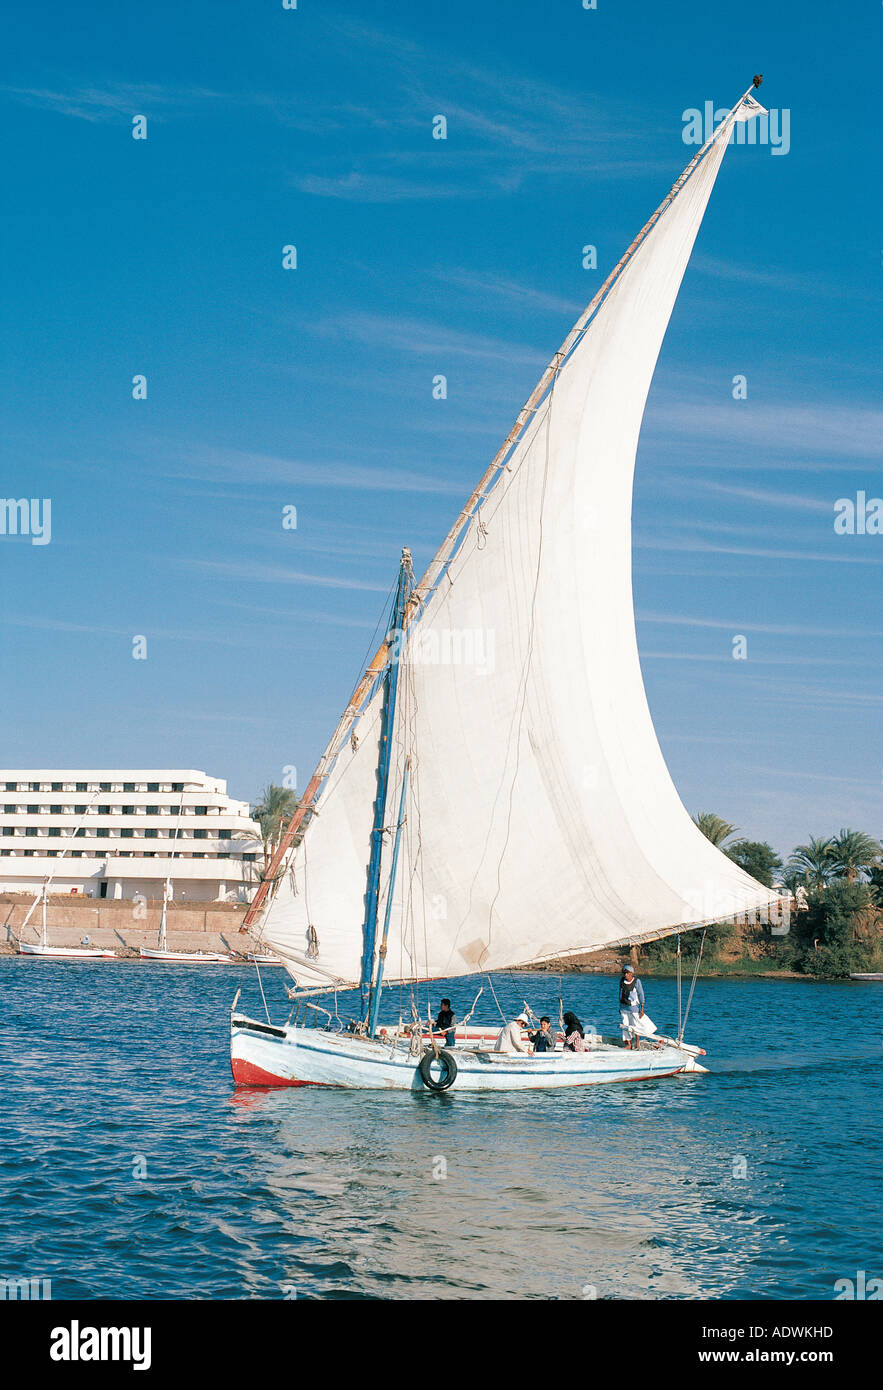 Felucca or sailing boat passing the Sheraton Luxor Hotel on the River Nile Egypt north Africa - Stock Image